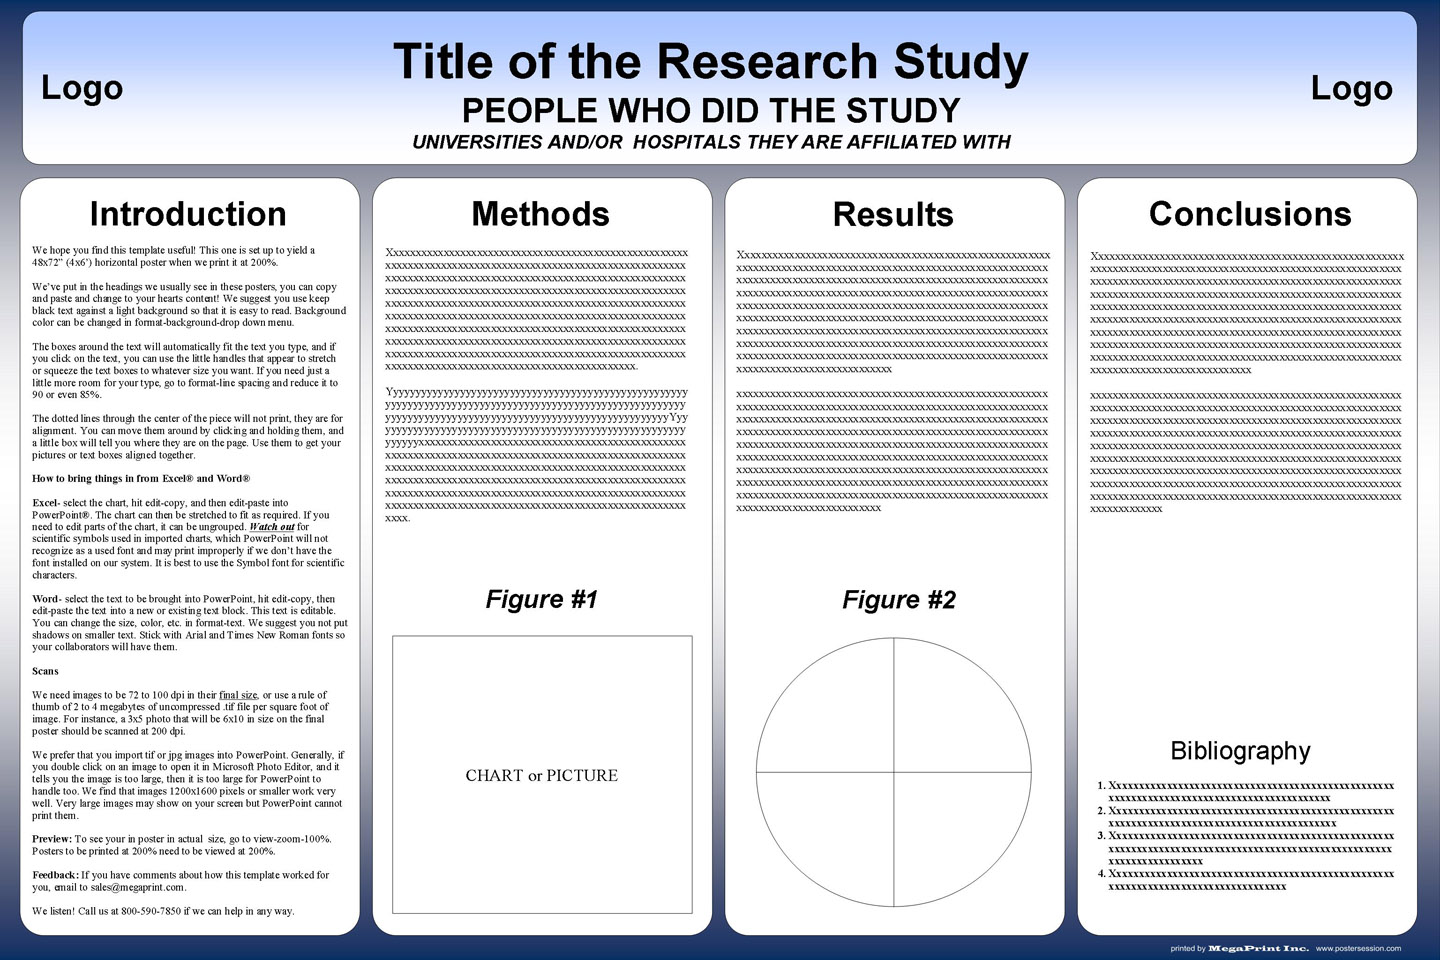 Free Powerpoint Scientific Research Poster Templates for Printing eZhwvpyE